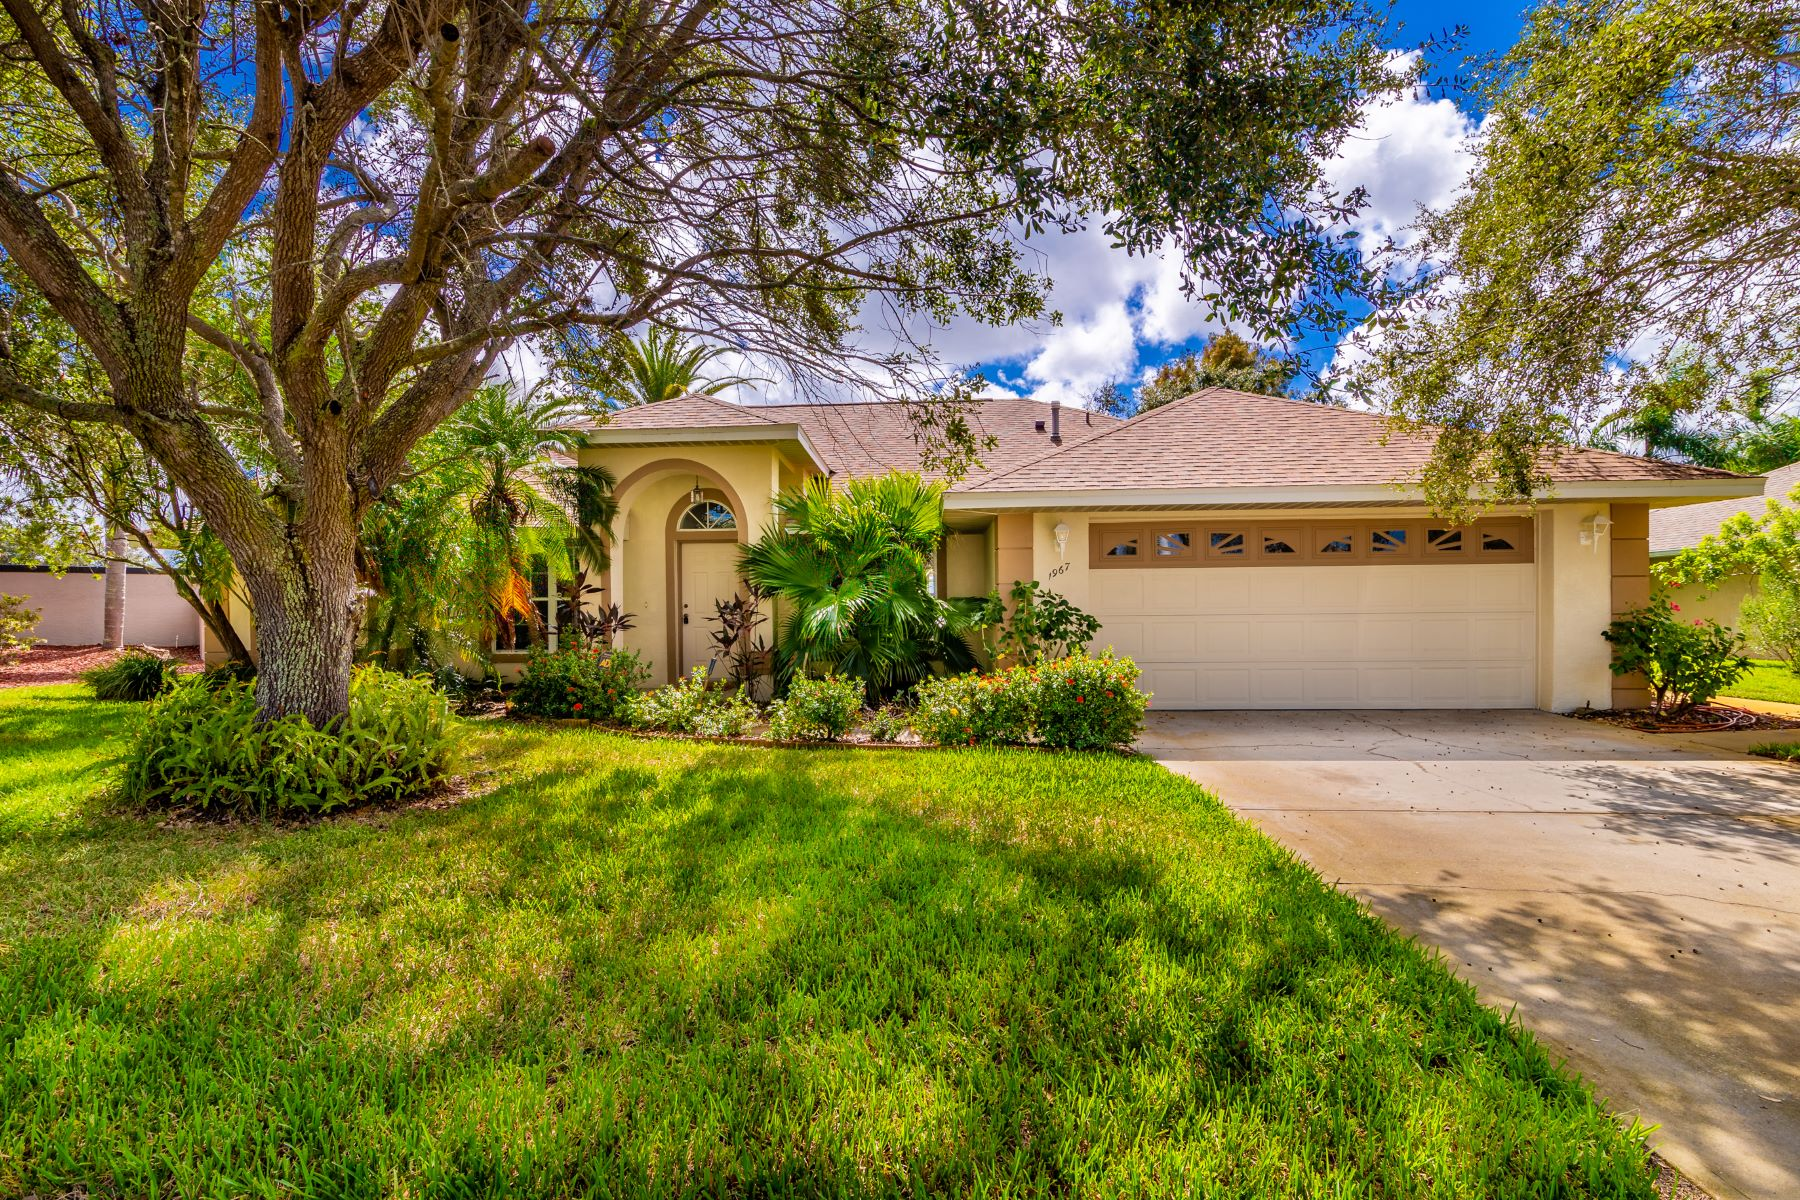 Property for Sale at Lakefront Home in Six Mile Creek 1967 Crane Creek Boulevard Melbourne, Florida 32940 United States